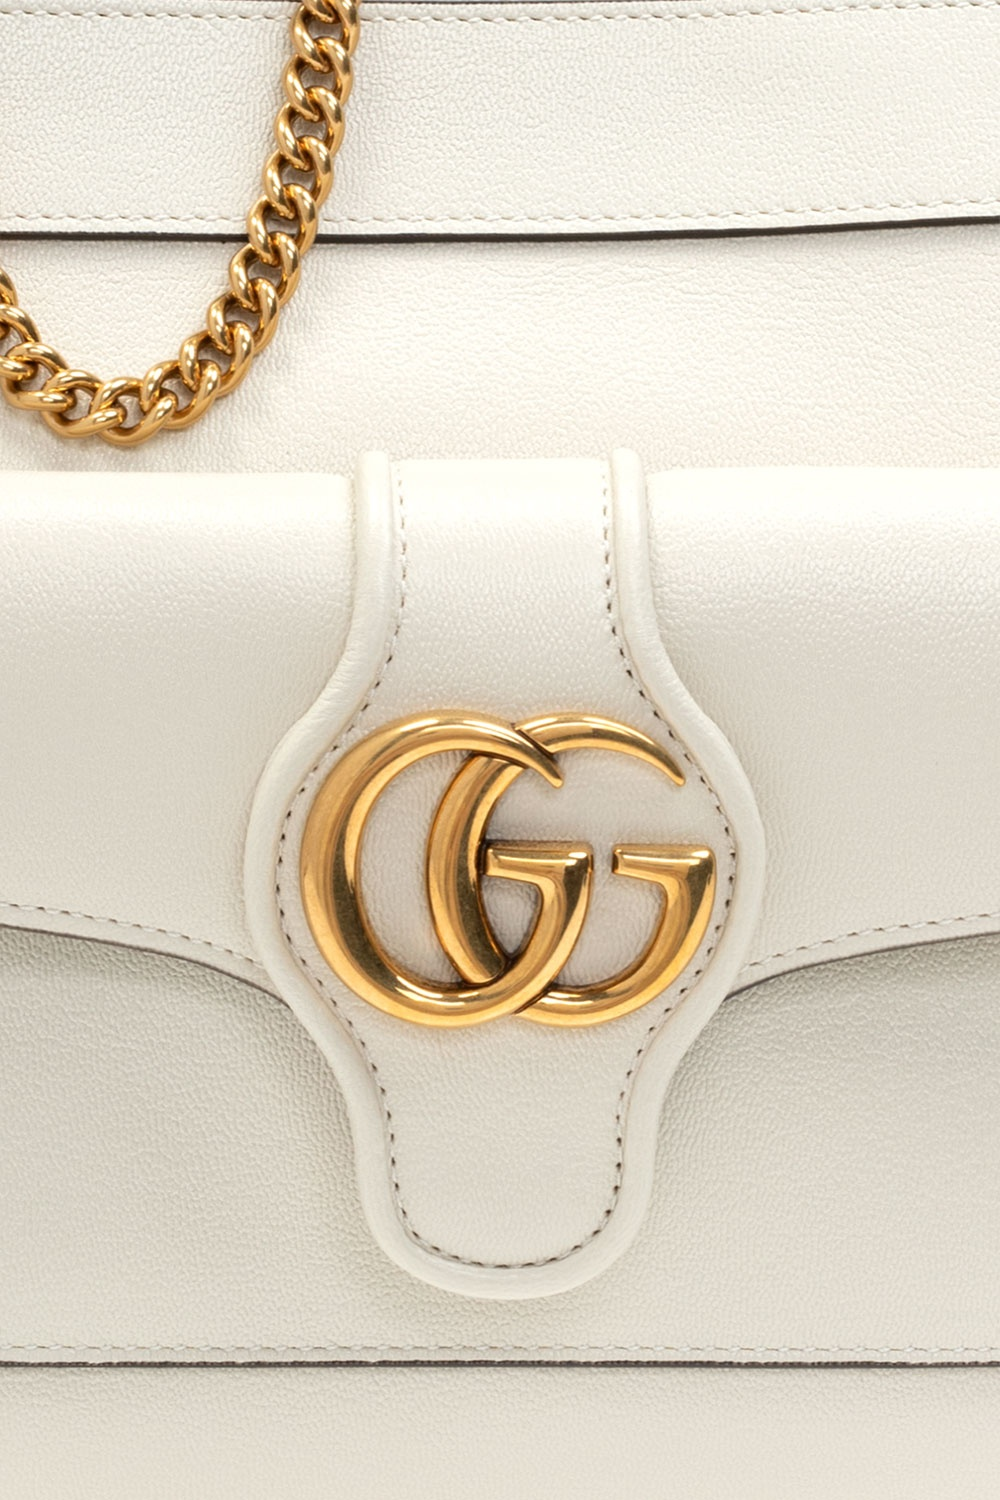 Gucci Shoulder bag with logo